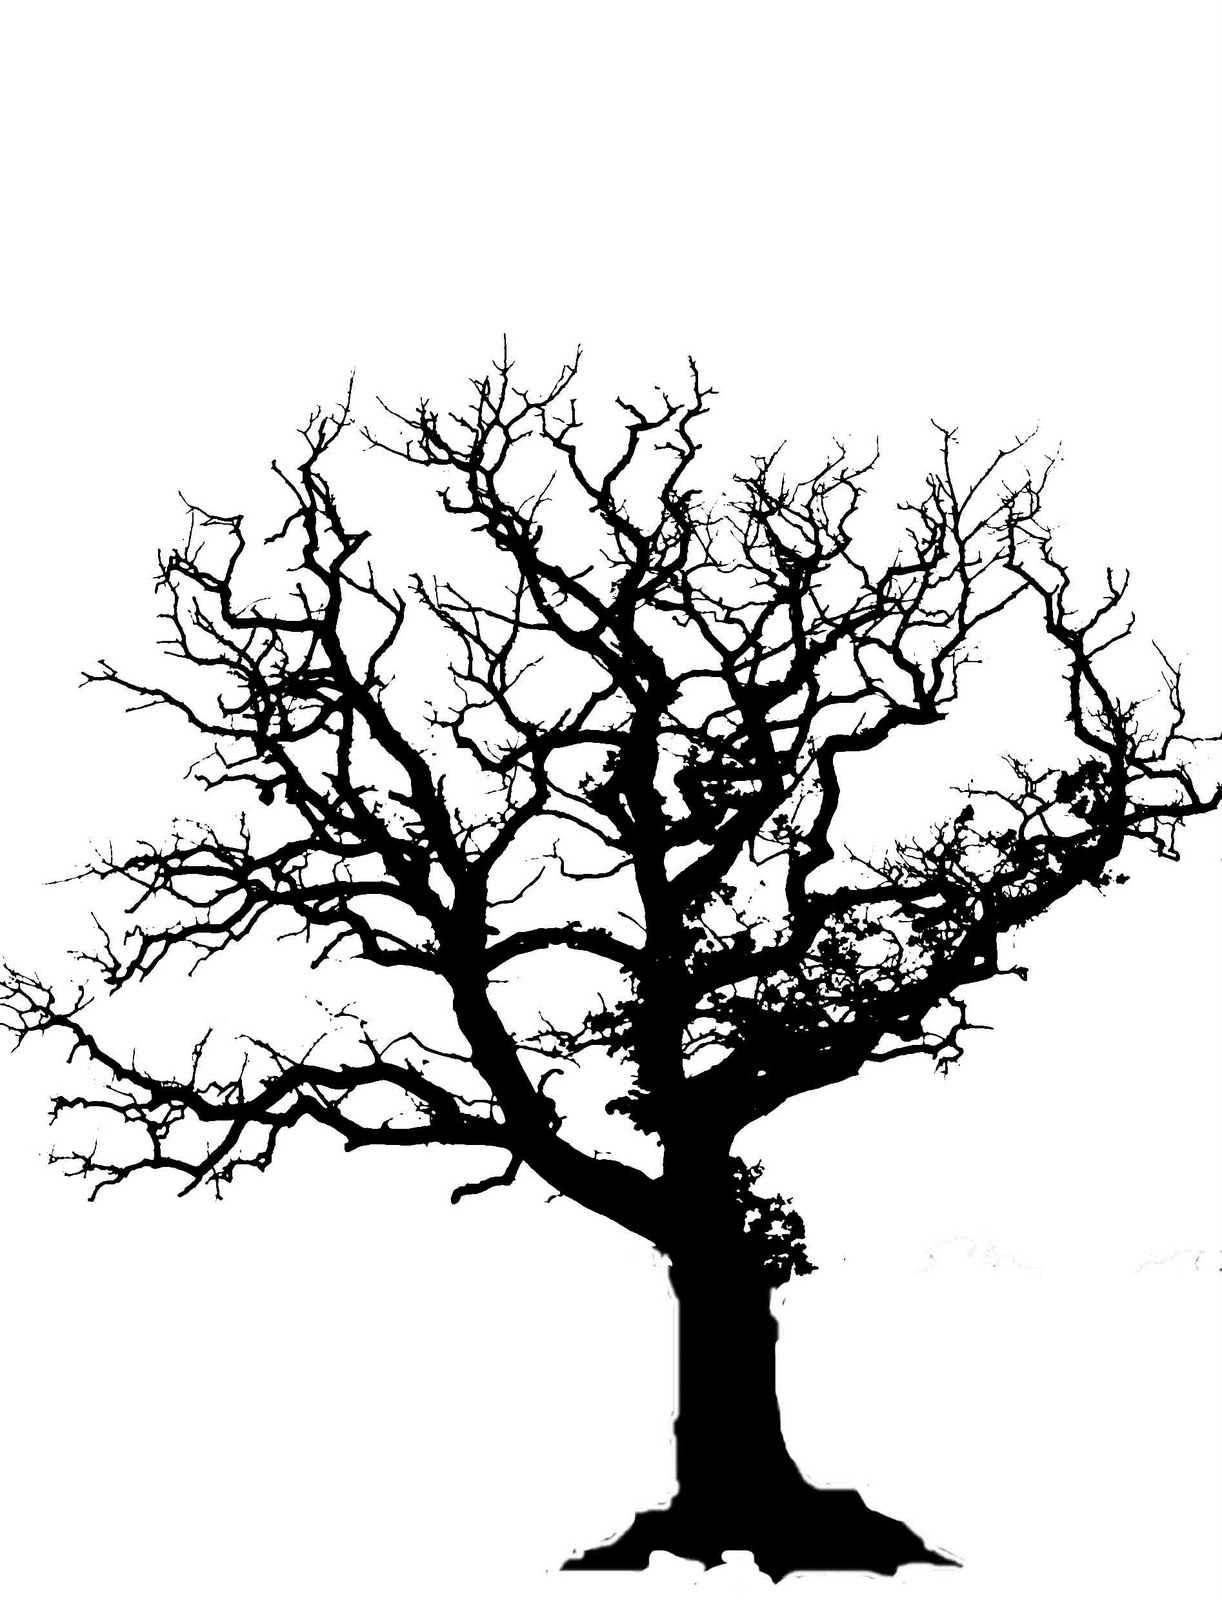 Dead Tree Dark Abstract clipart #13, Download drawings